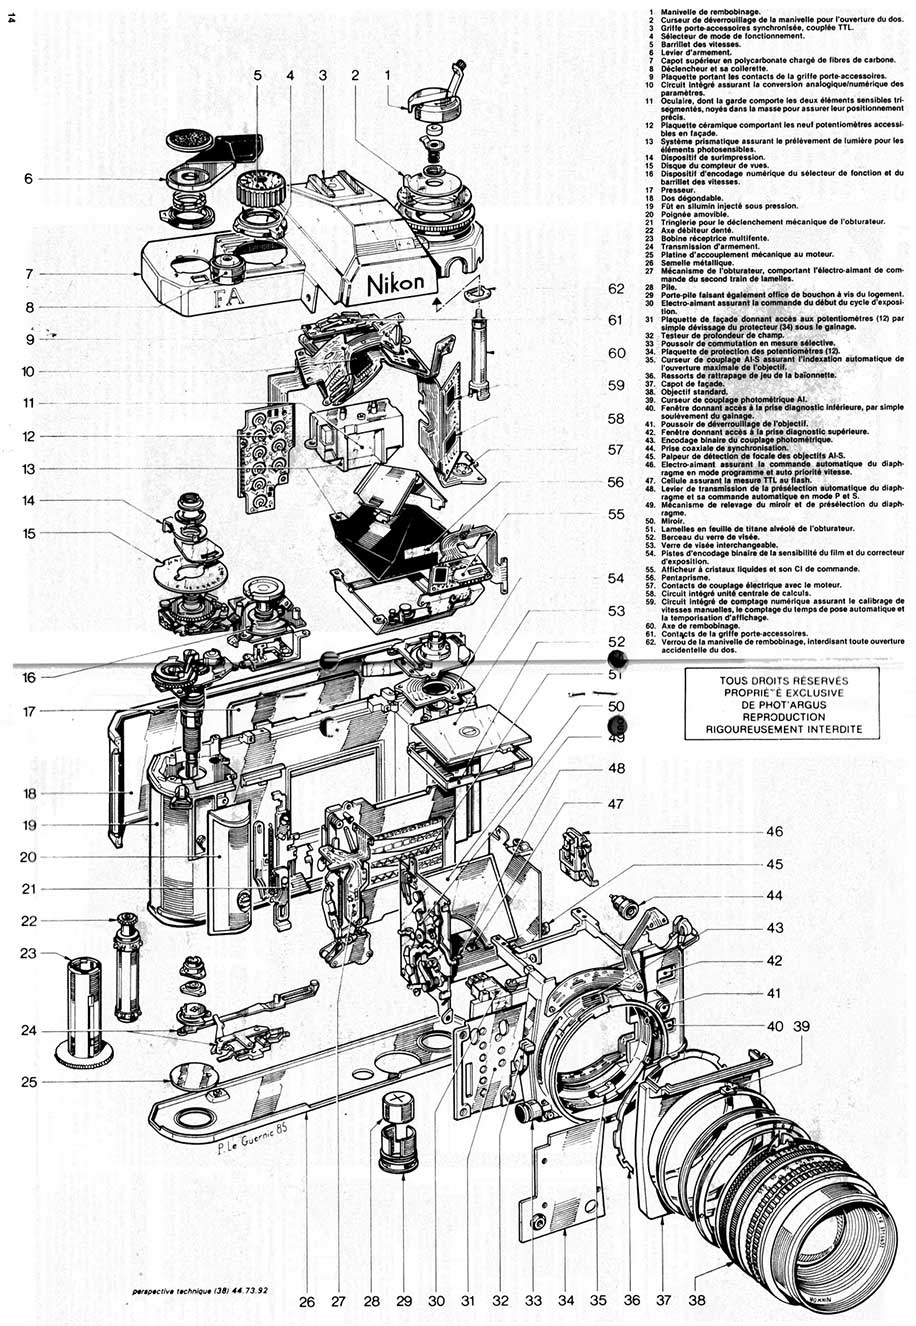 Eiffel Tower Engineering Drawing 1886 Daniel Hagerman likewise Boeing b 17 in addition Bench Power Supply Failed likewise 293287 moreover Why Is Designed Active Low. on engineering schematics